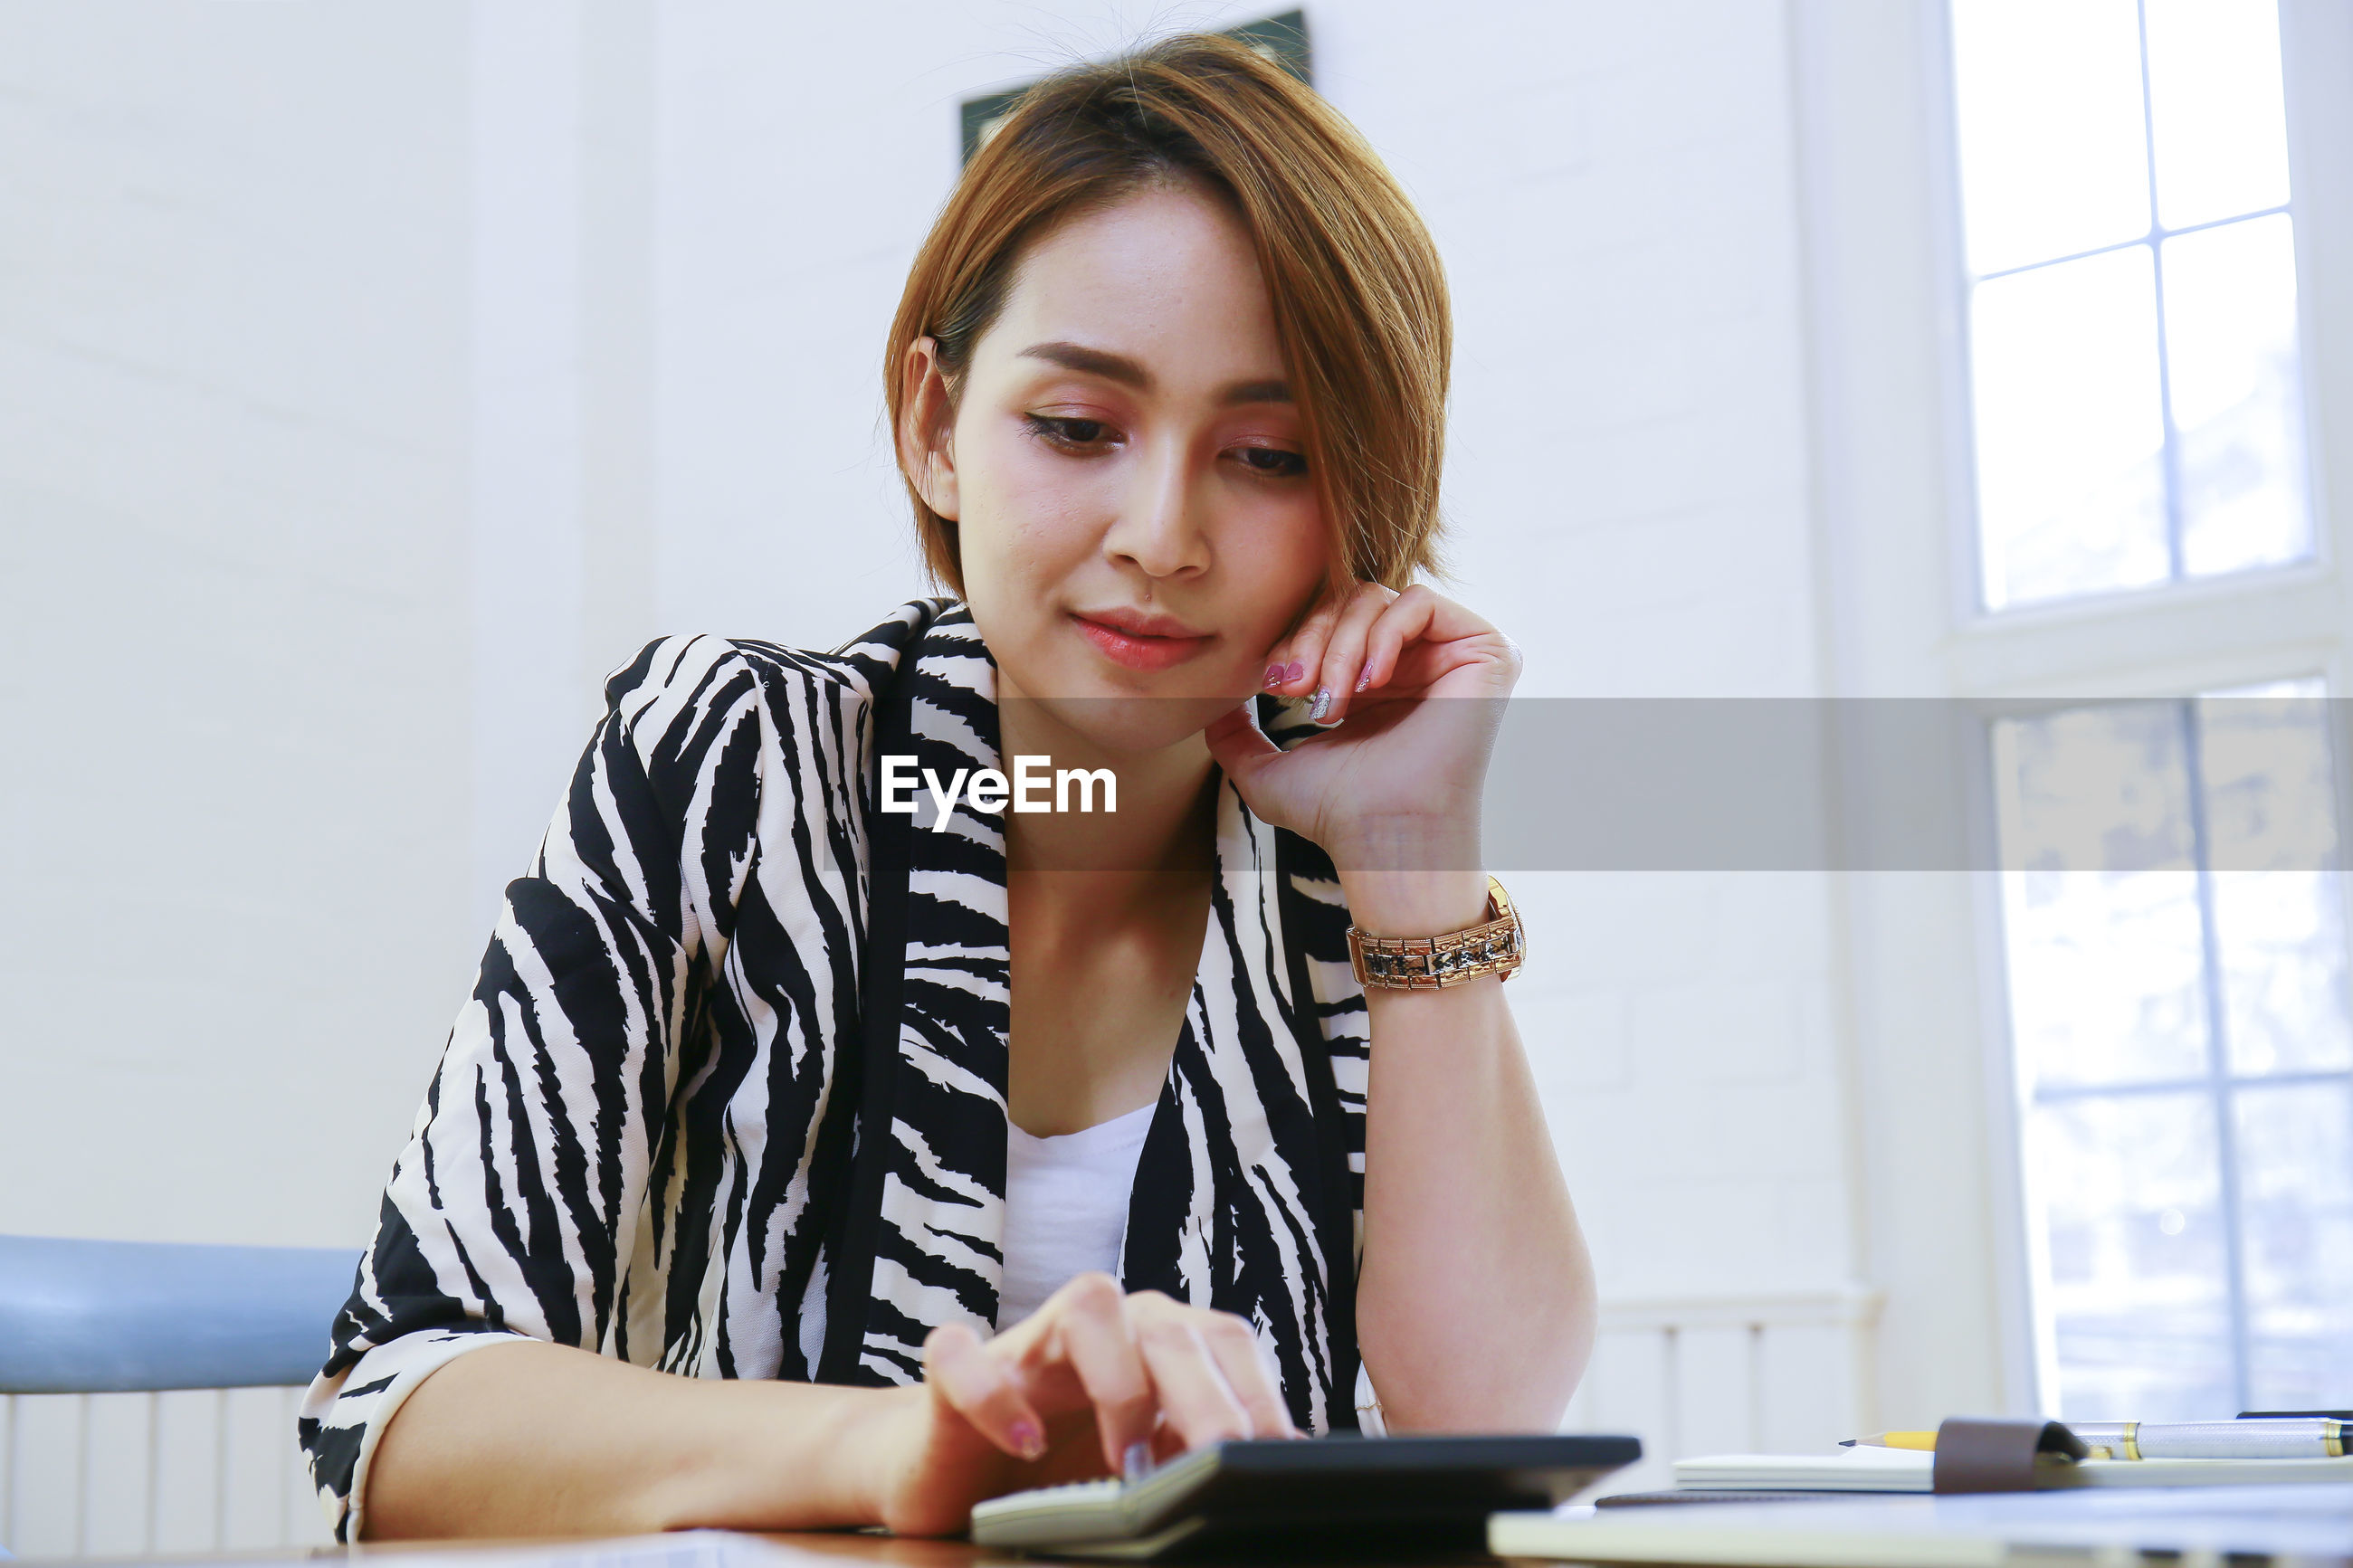 Beautiful businesswoman using calculator at desk in office